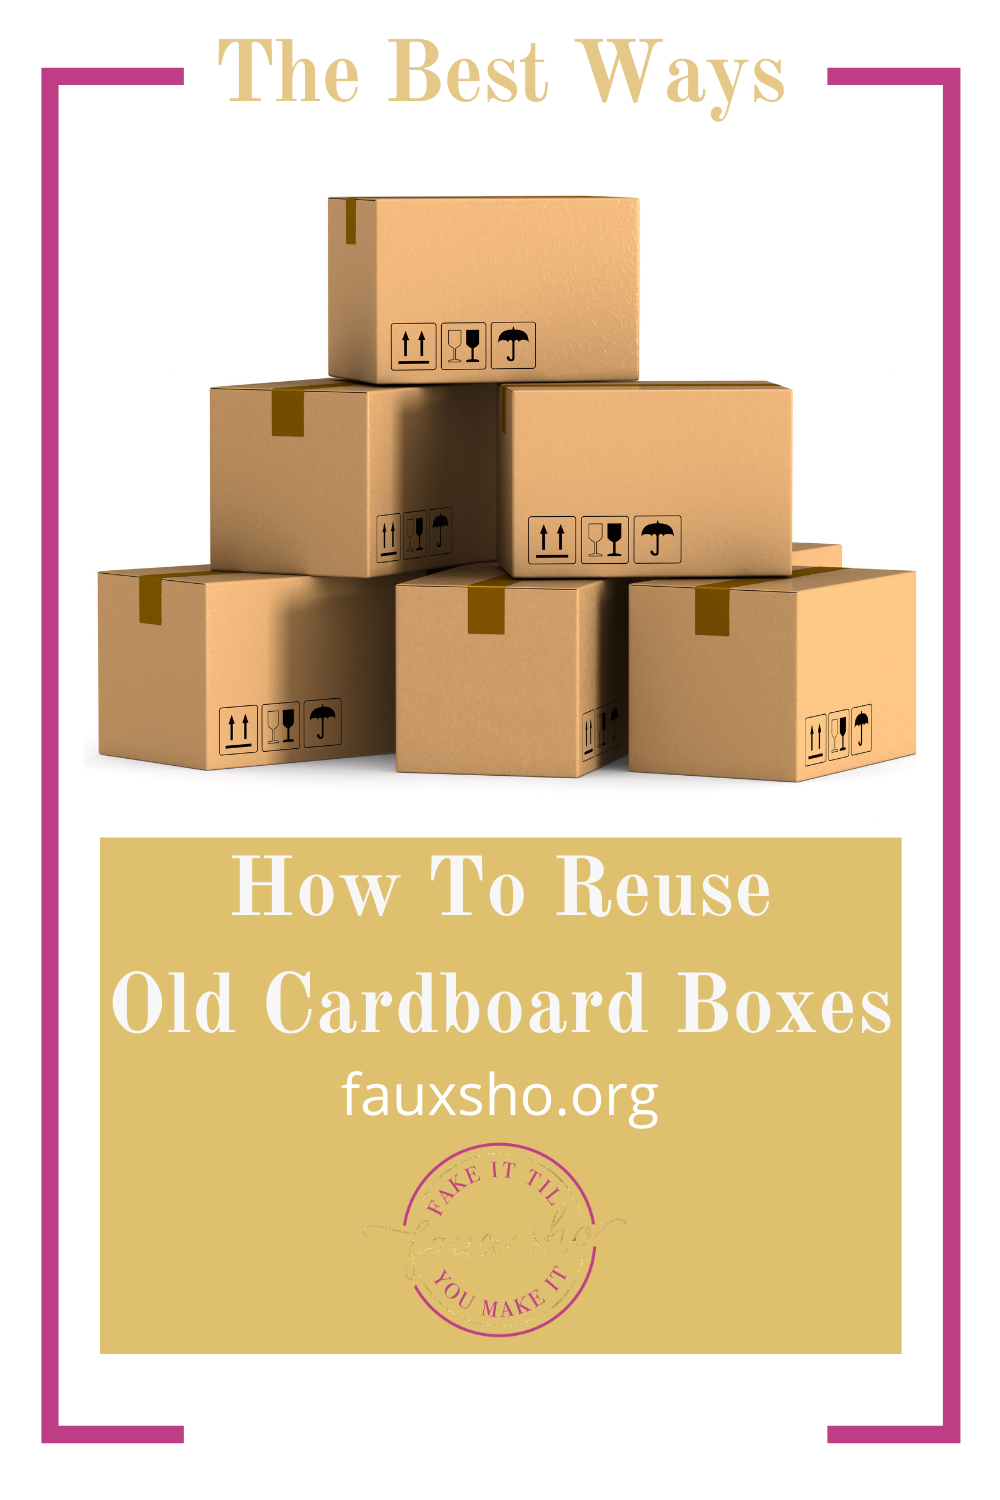 Fauxsho.org has creative ideas for how to reuse old cardboard boxes. Upcycling is a great way to save money and the planet. Read the article to learn more.